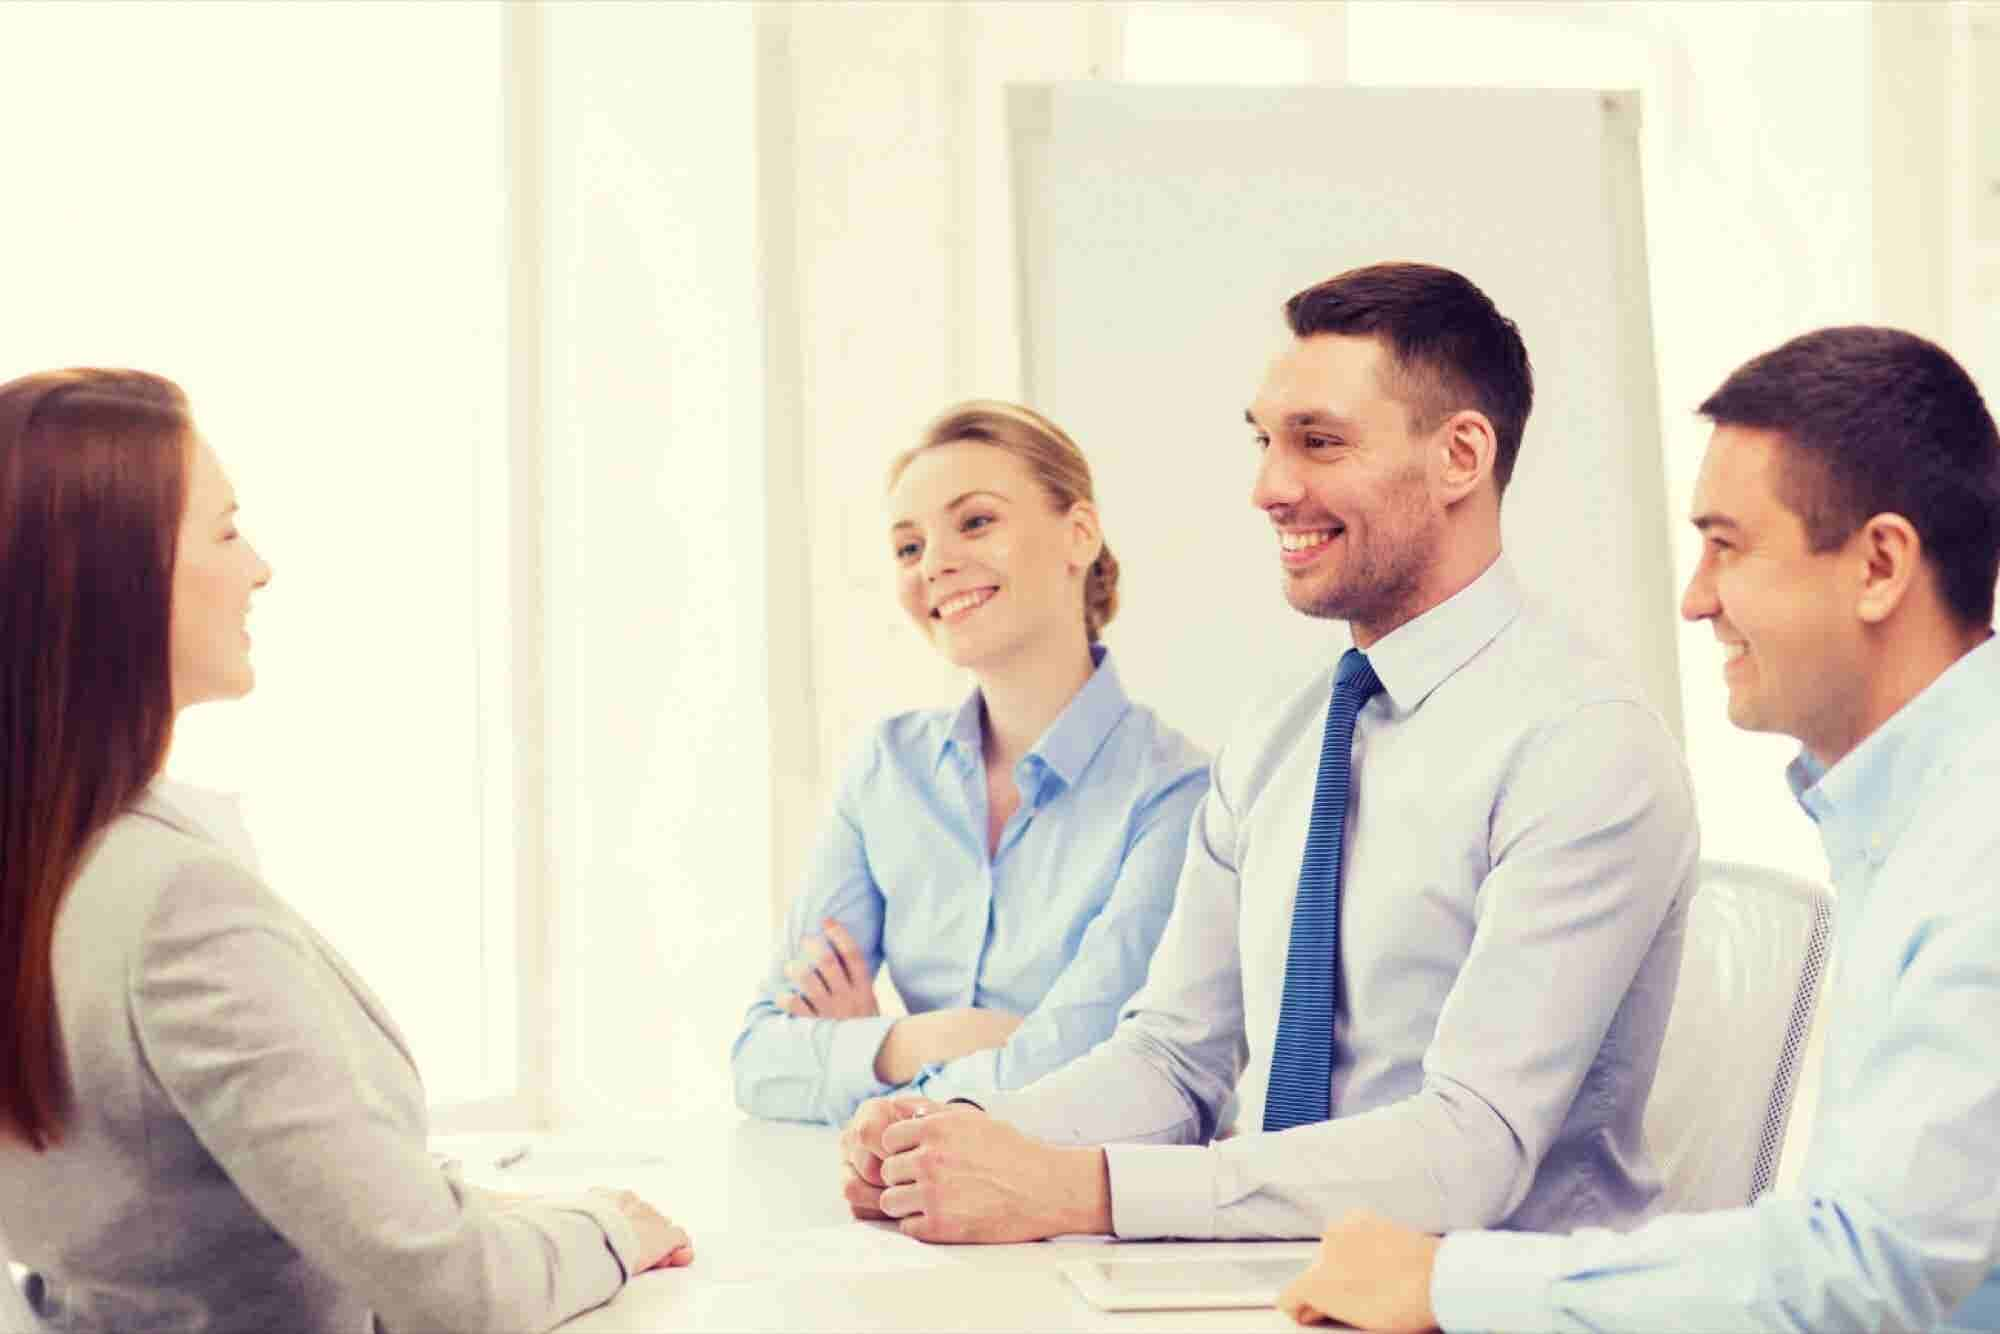 How To Choose The Right Company To Further Your Career